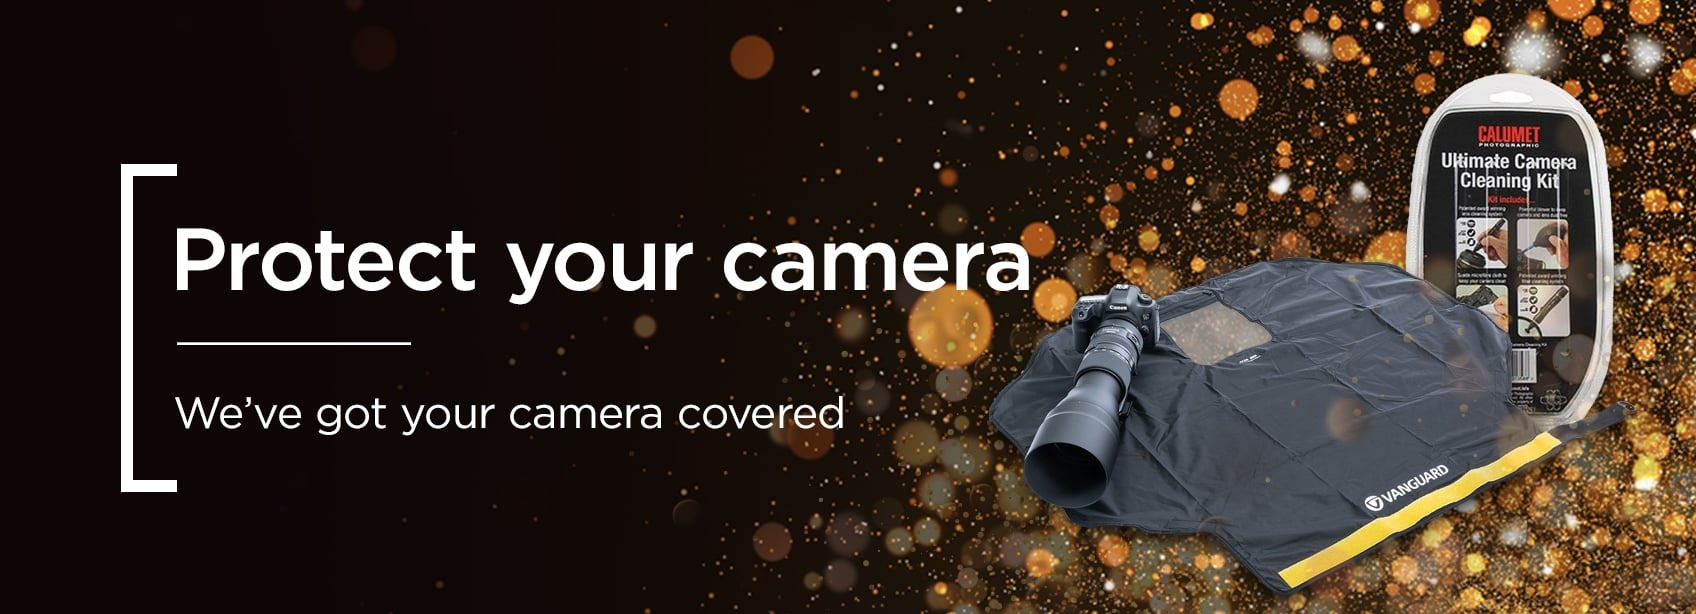 wex-photo-video-CameraProtect-C-181119.jpg